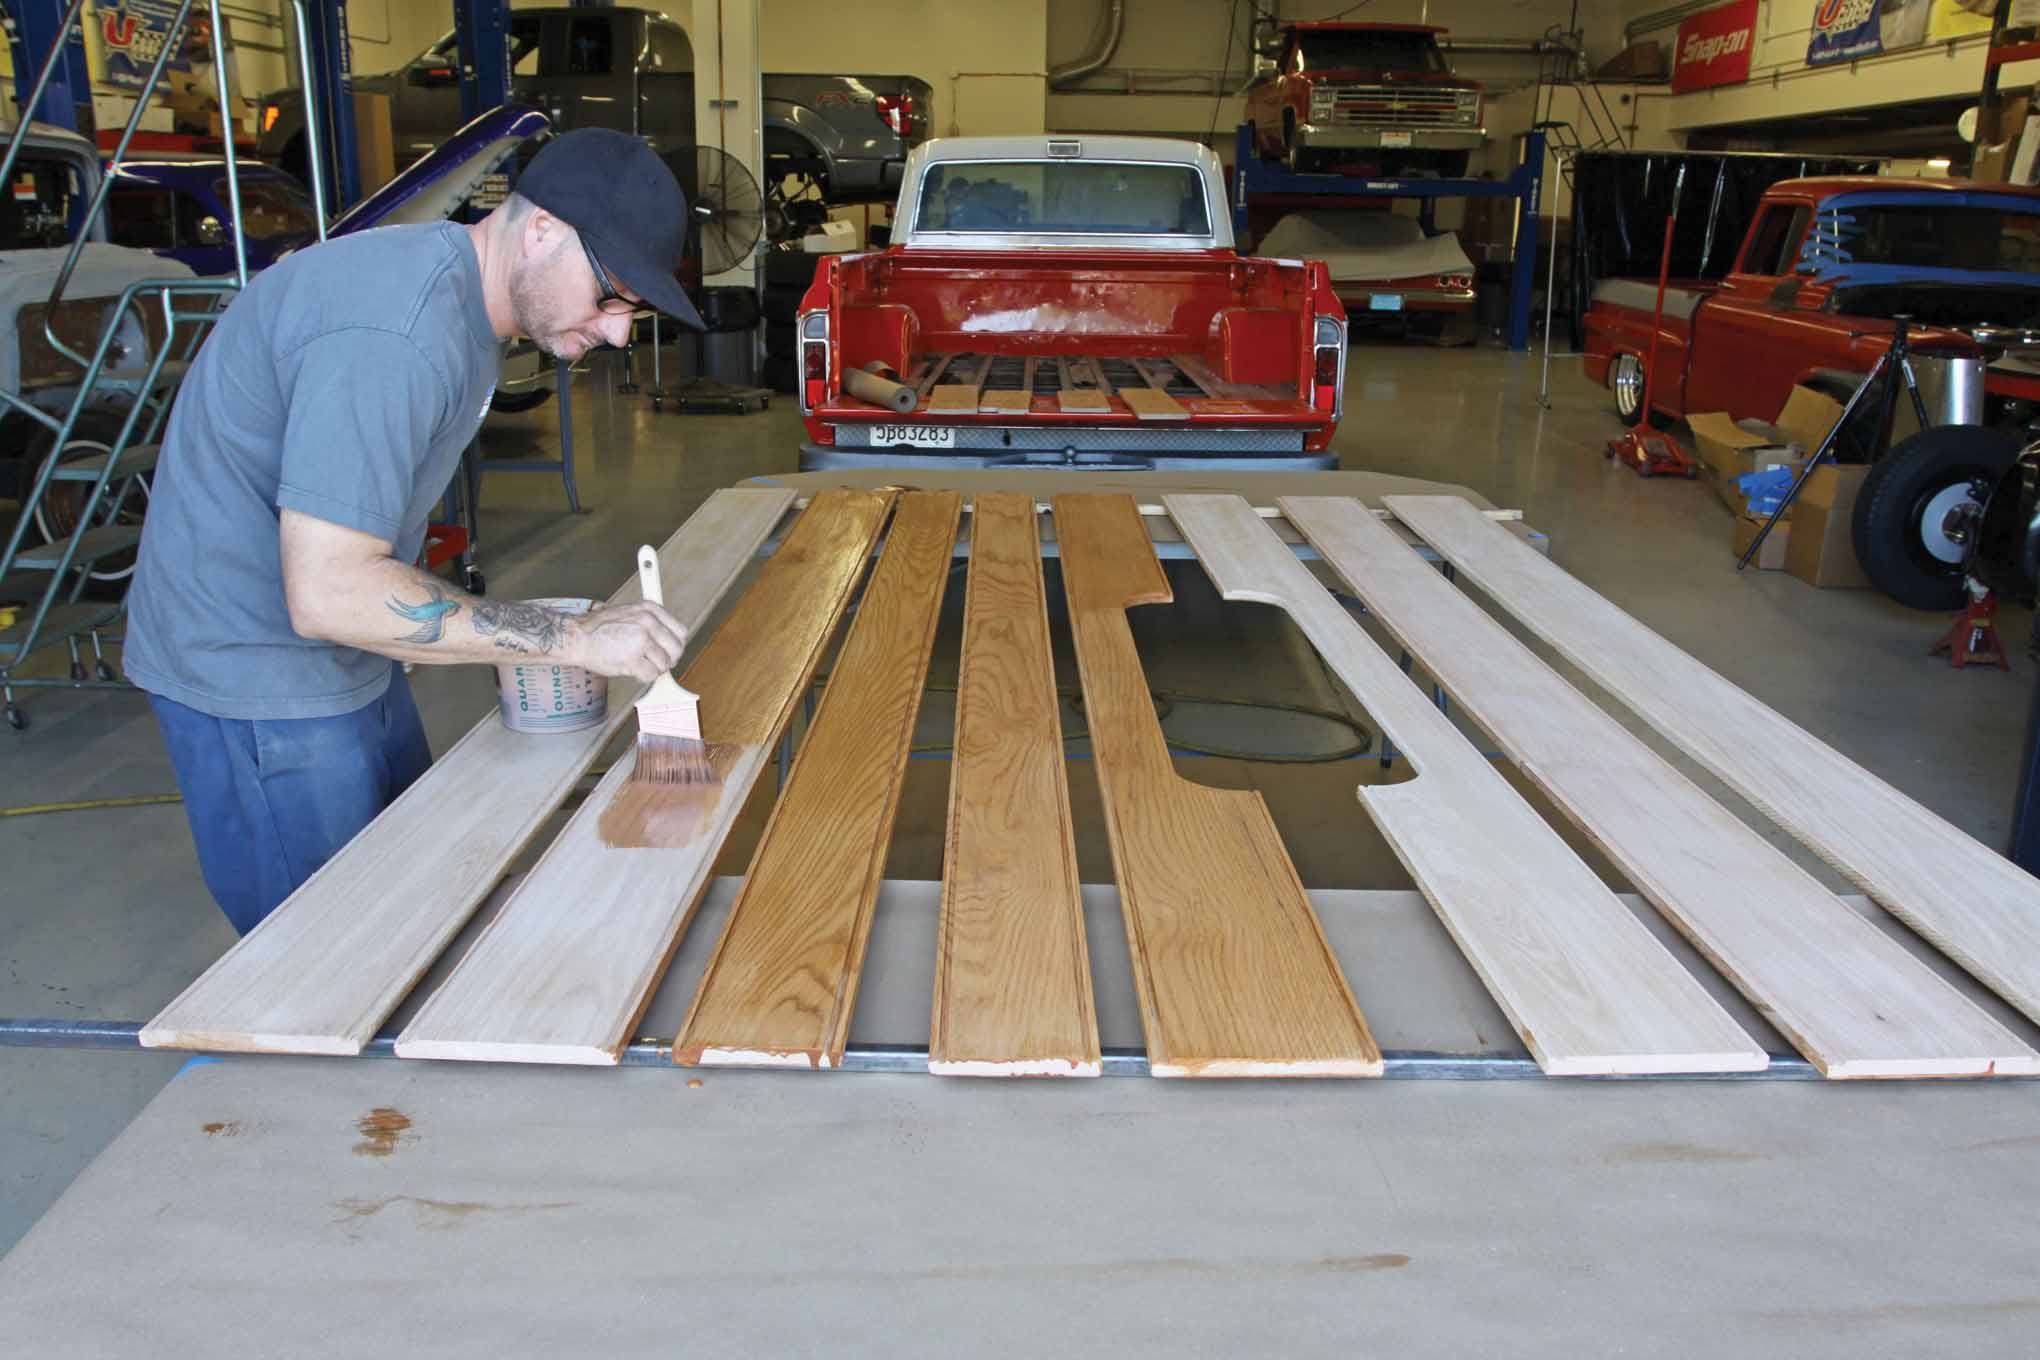 After removing a few grease stains with lacquer thinner on a clean rag, we stained the top side of the planks. The stain was allowed to dry thoroughly and then a second coat was applied.